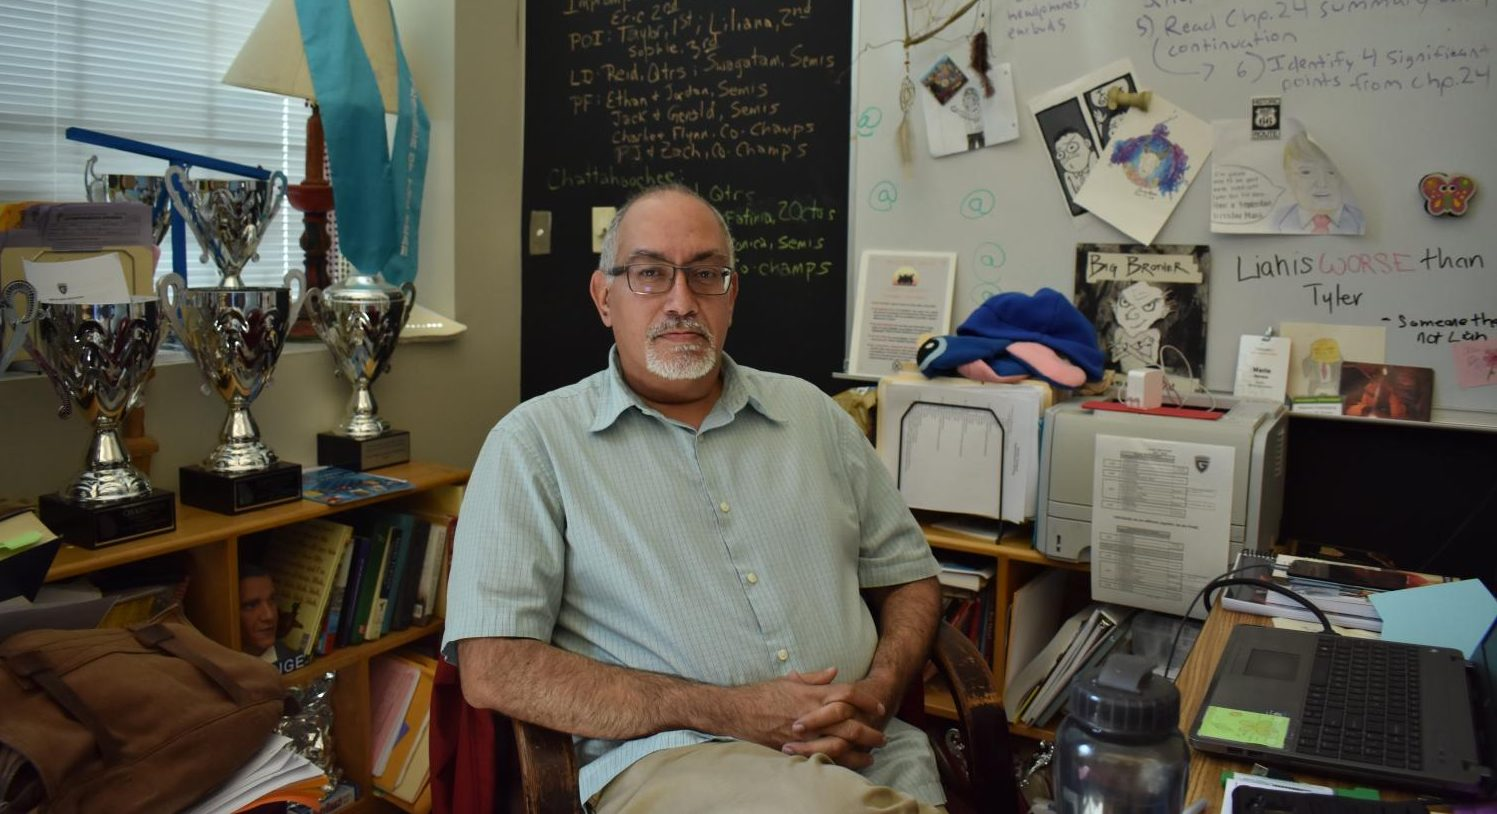 Mario Lorenzo Herrera sits in his iconic third floor classroom filled in view of hundreds of trophies and awards the debate team has won under his care.